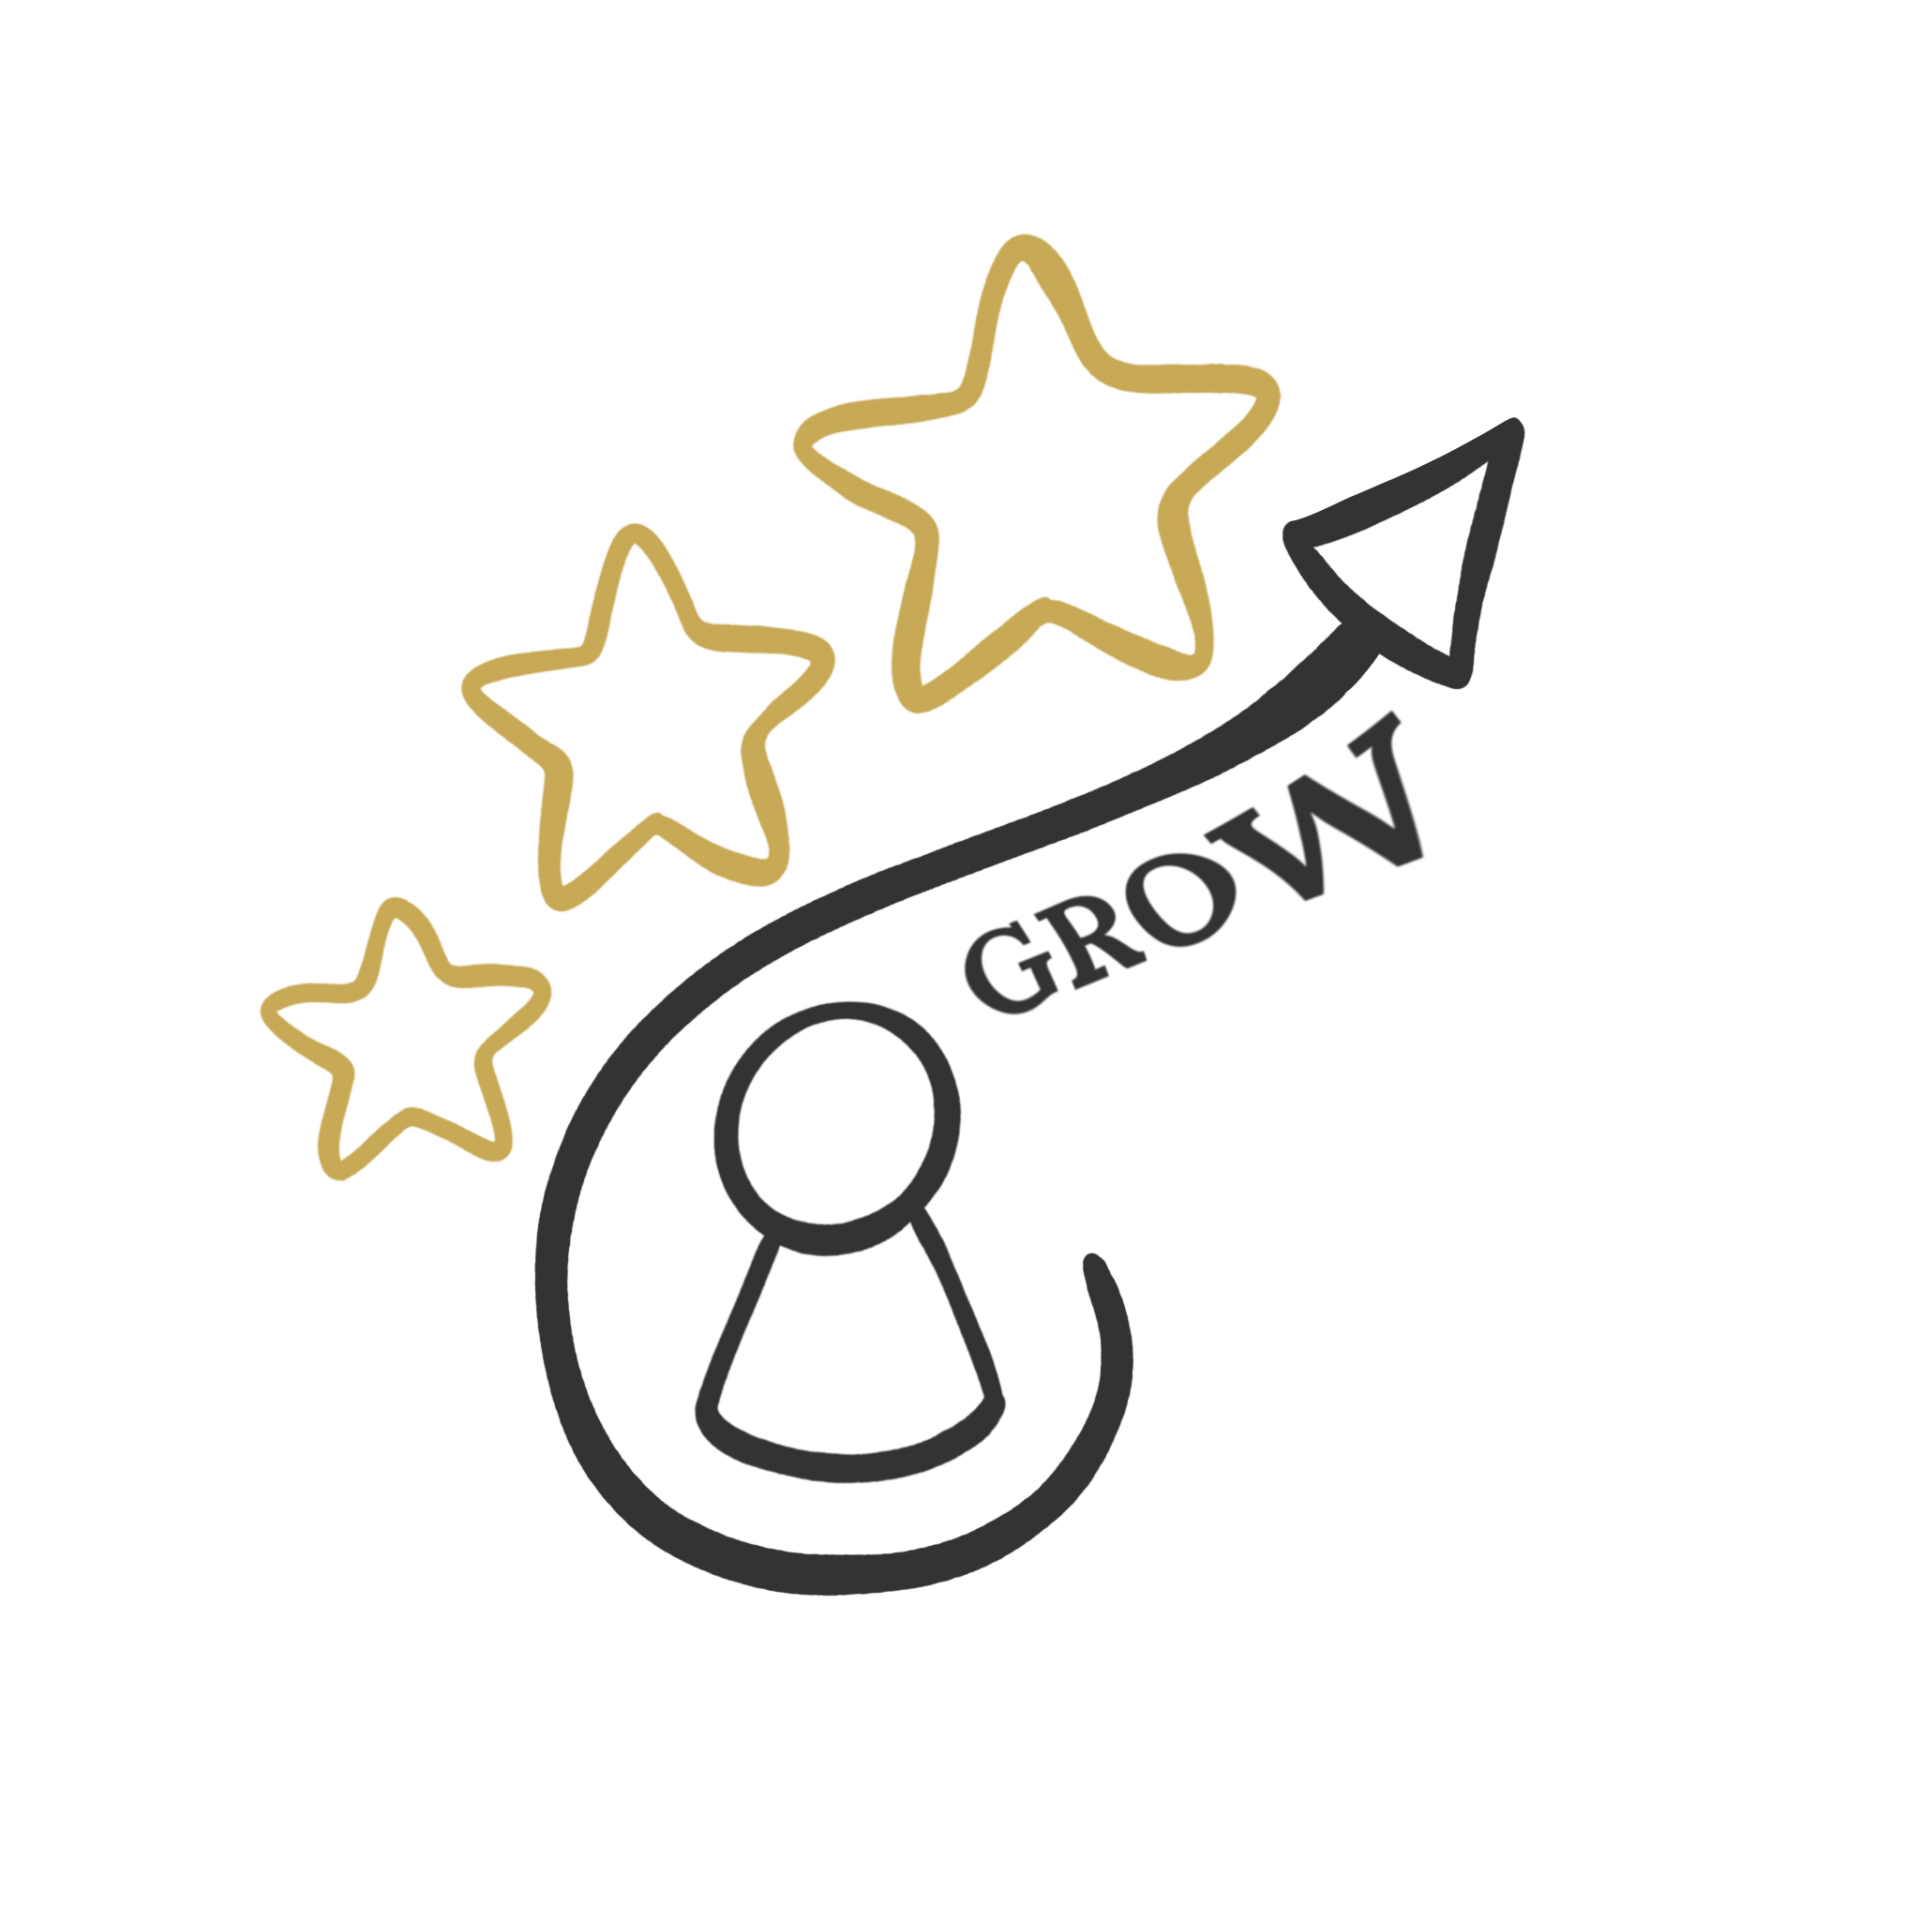 Icon_2 Grow Goud-Grijs